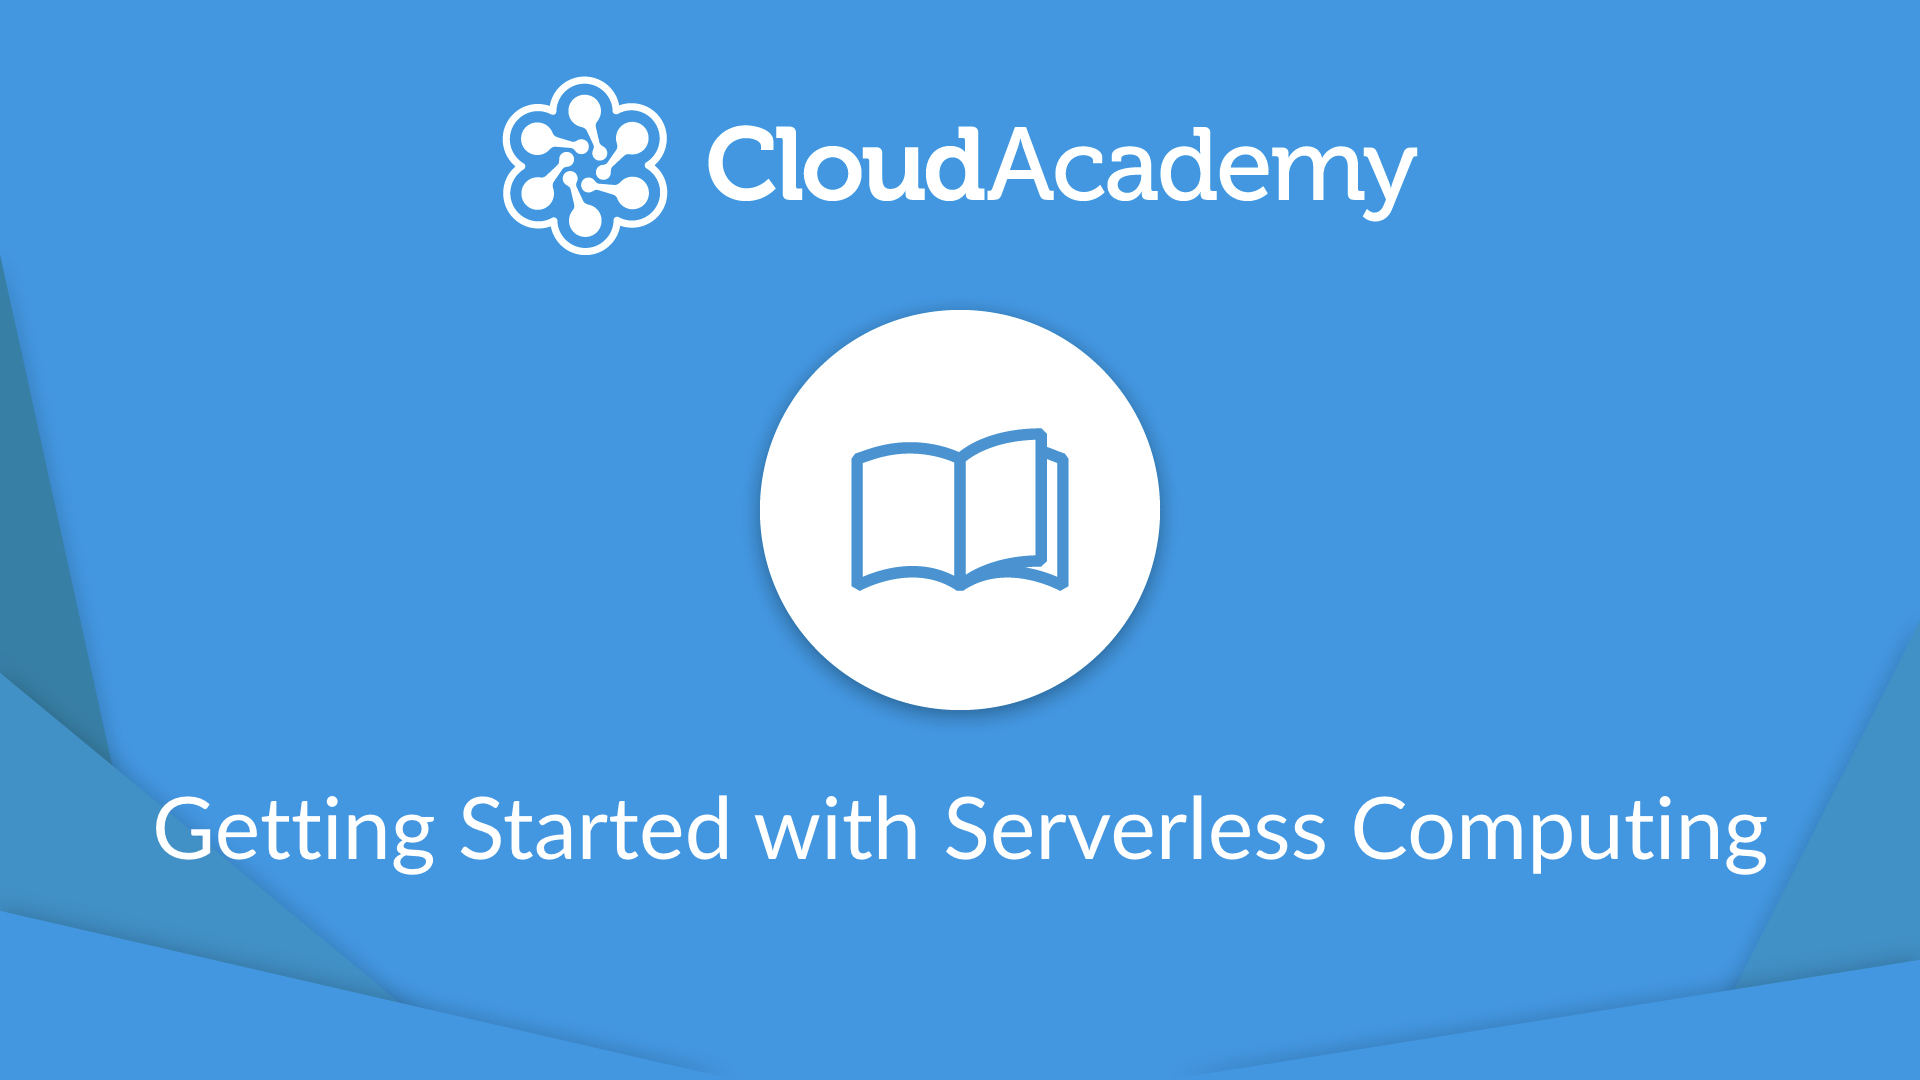 What Is Serverless Computing?